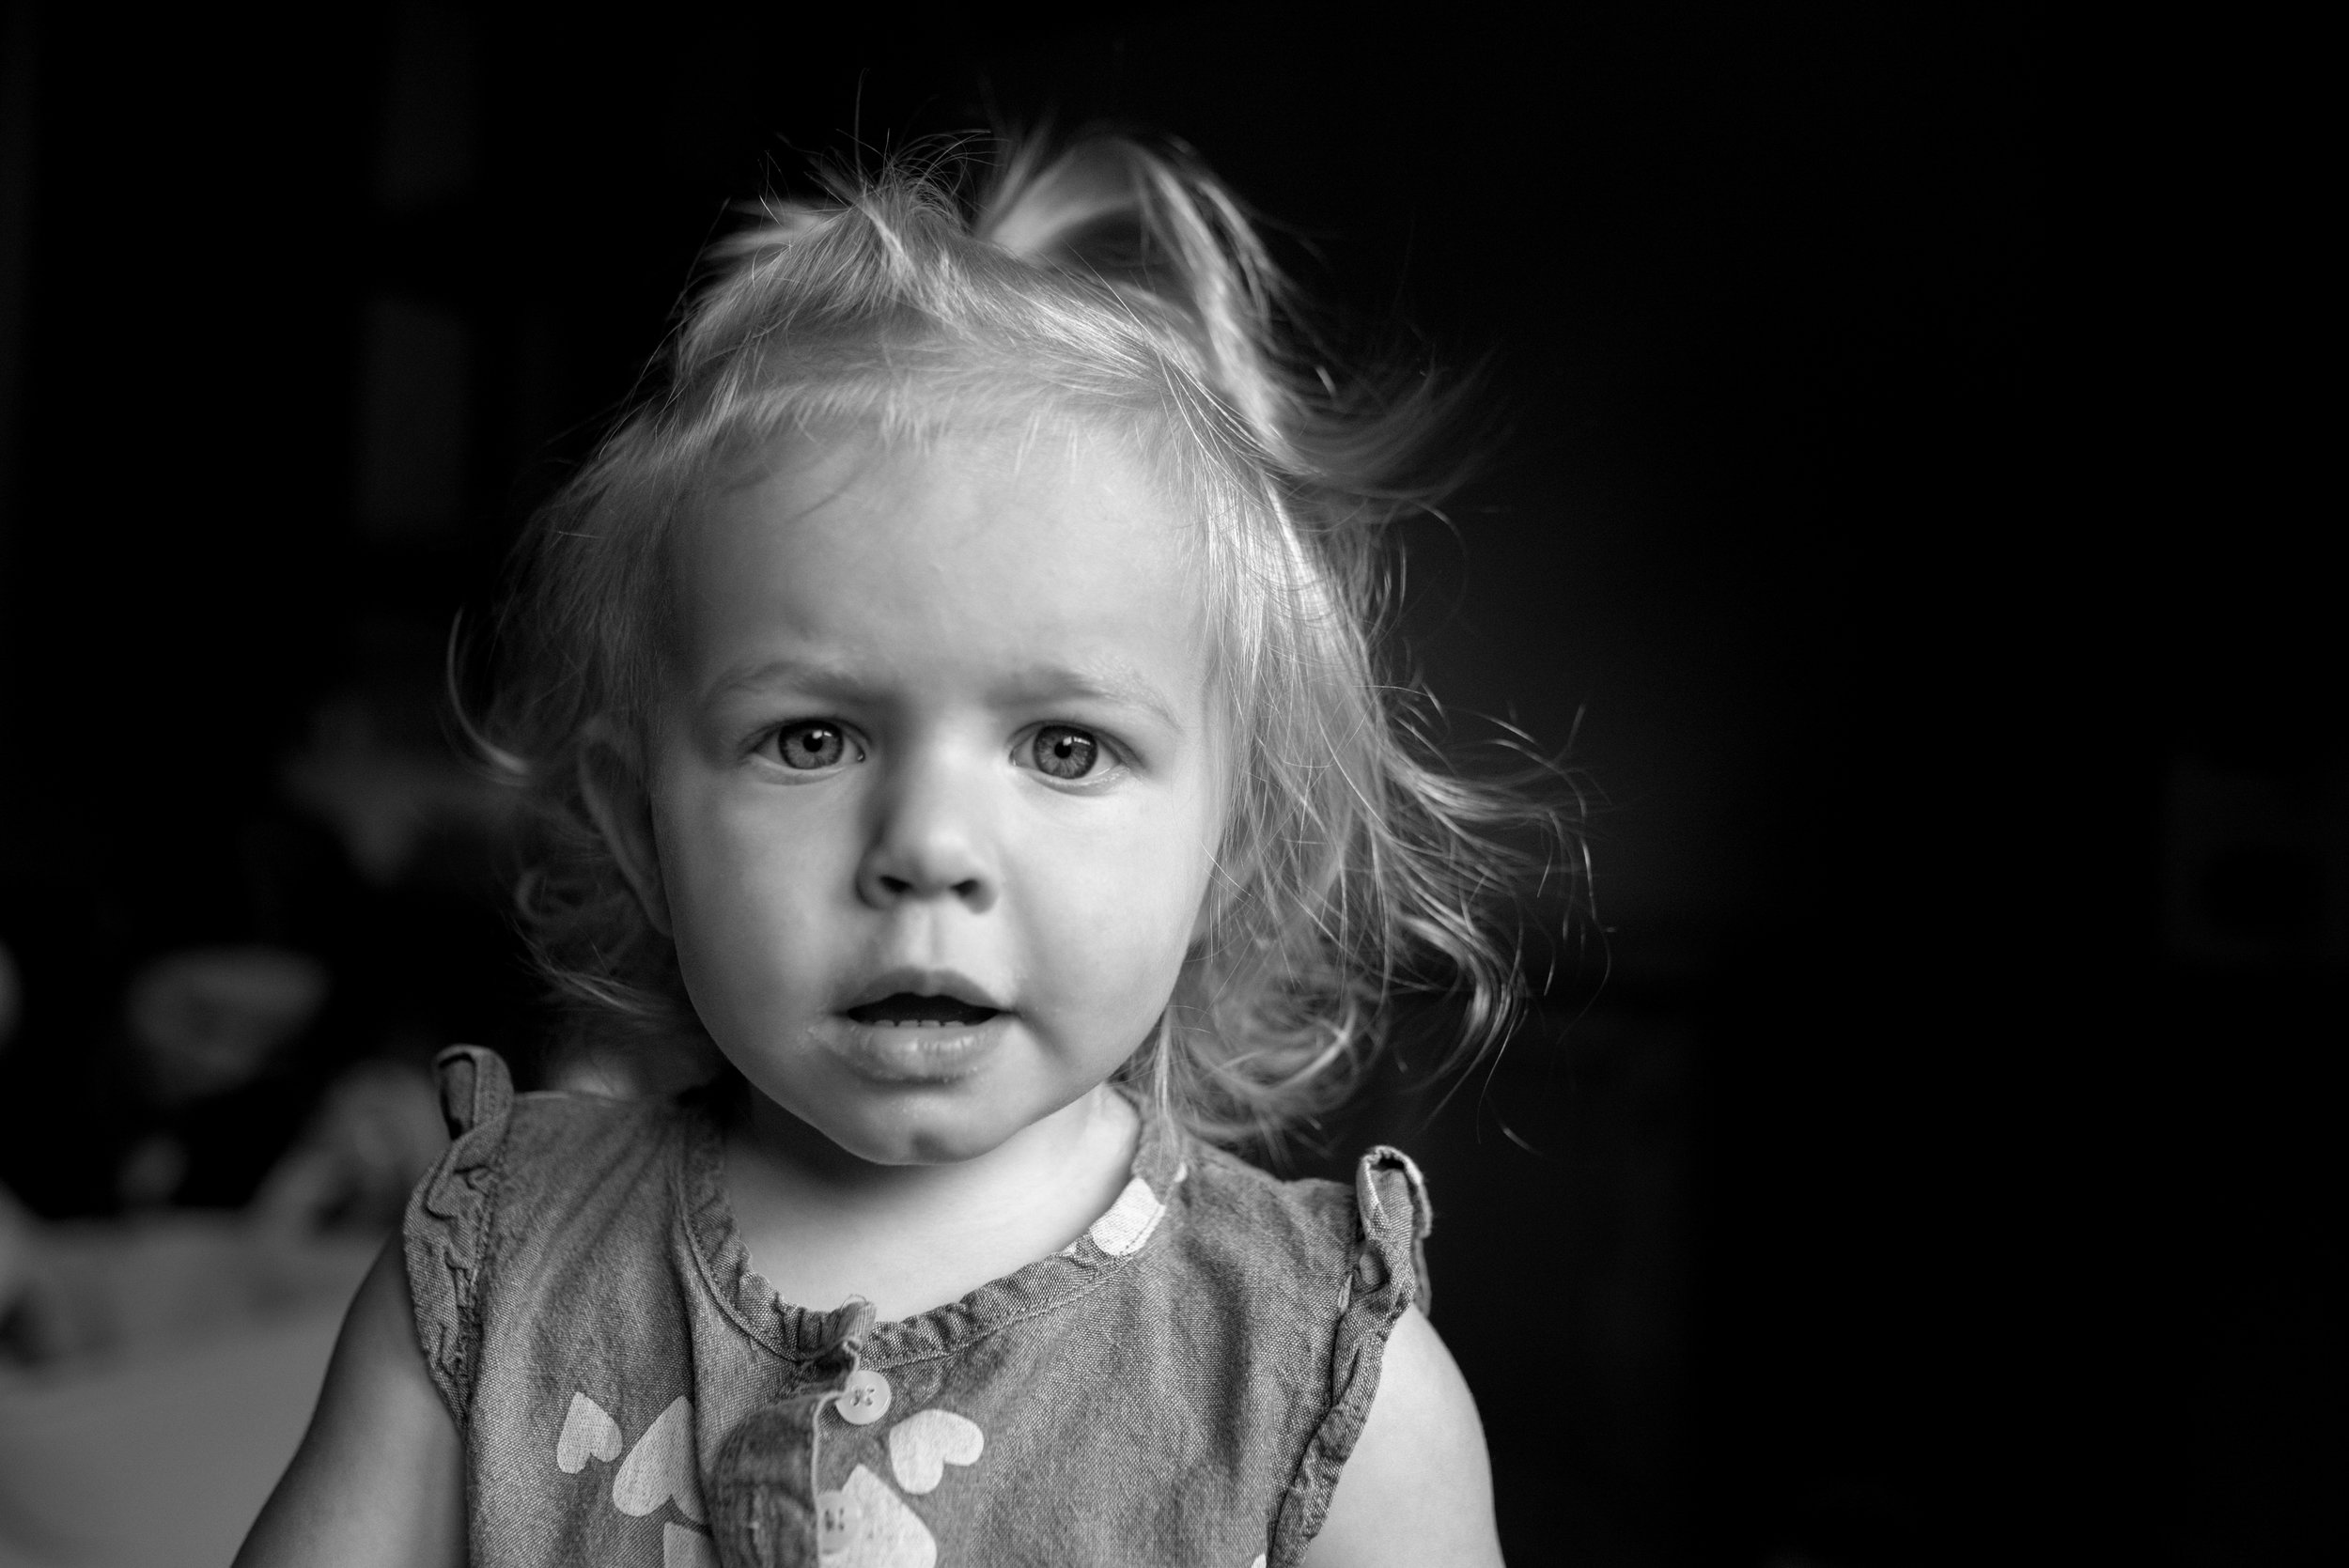 Portrait of toddler girl with blonde curly hair